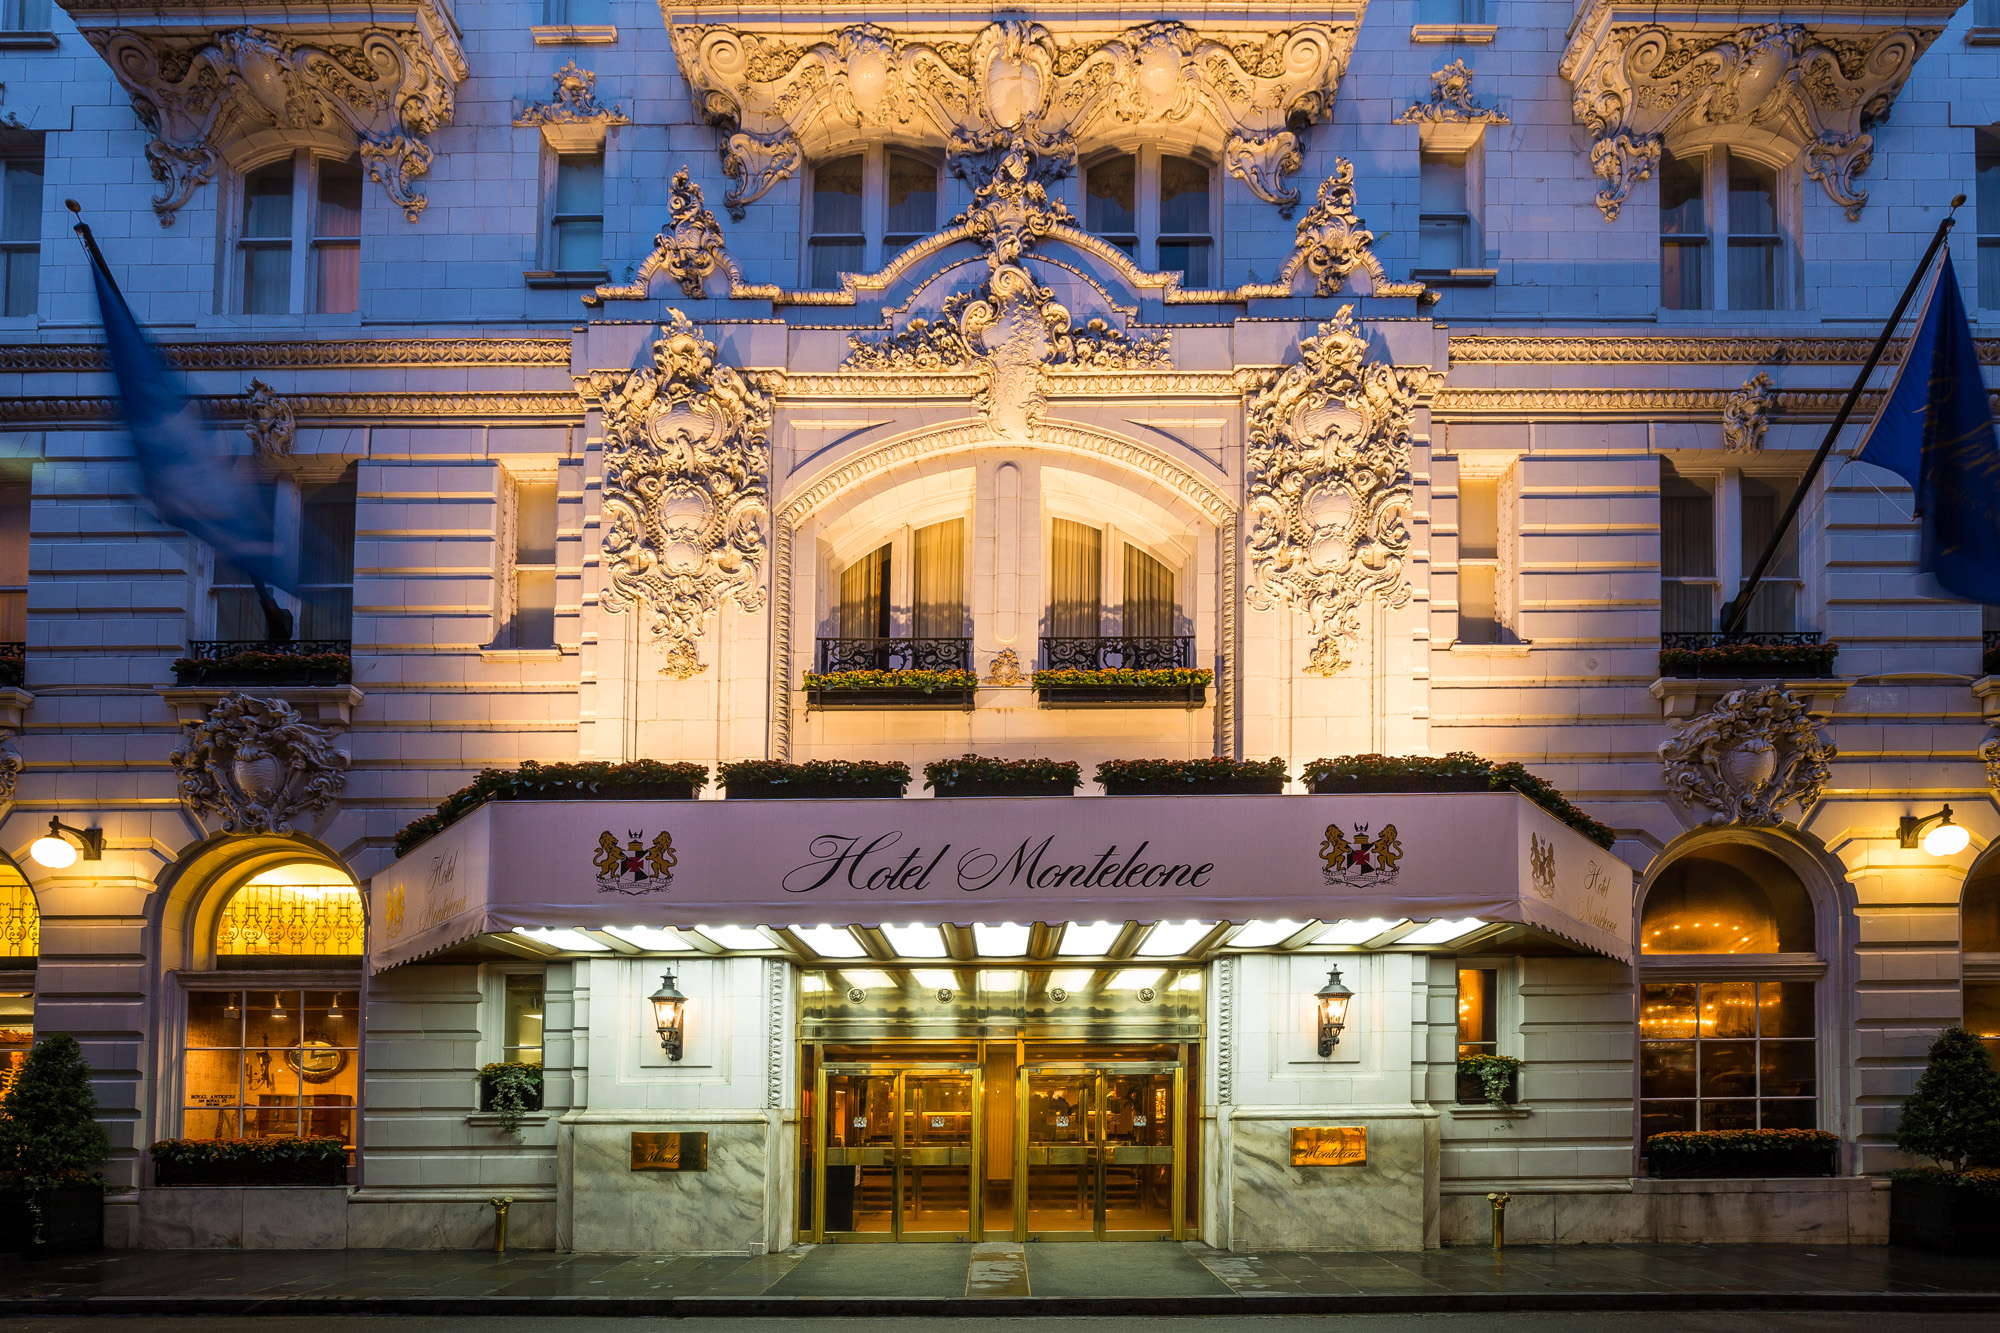 New Orleans Hotels >> Carousel Bar Lounge Hotel Monteleone French Quarter